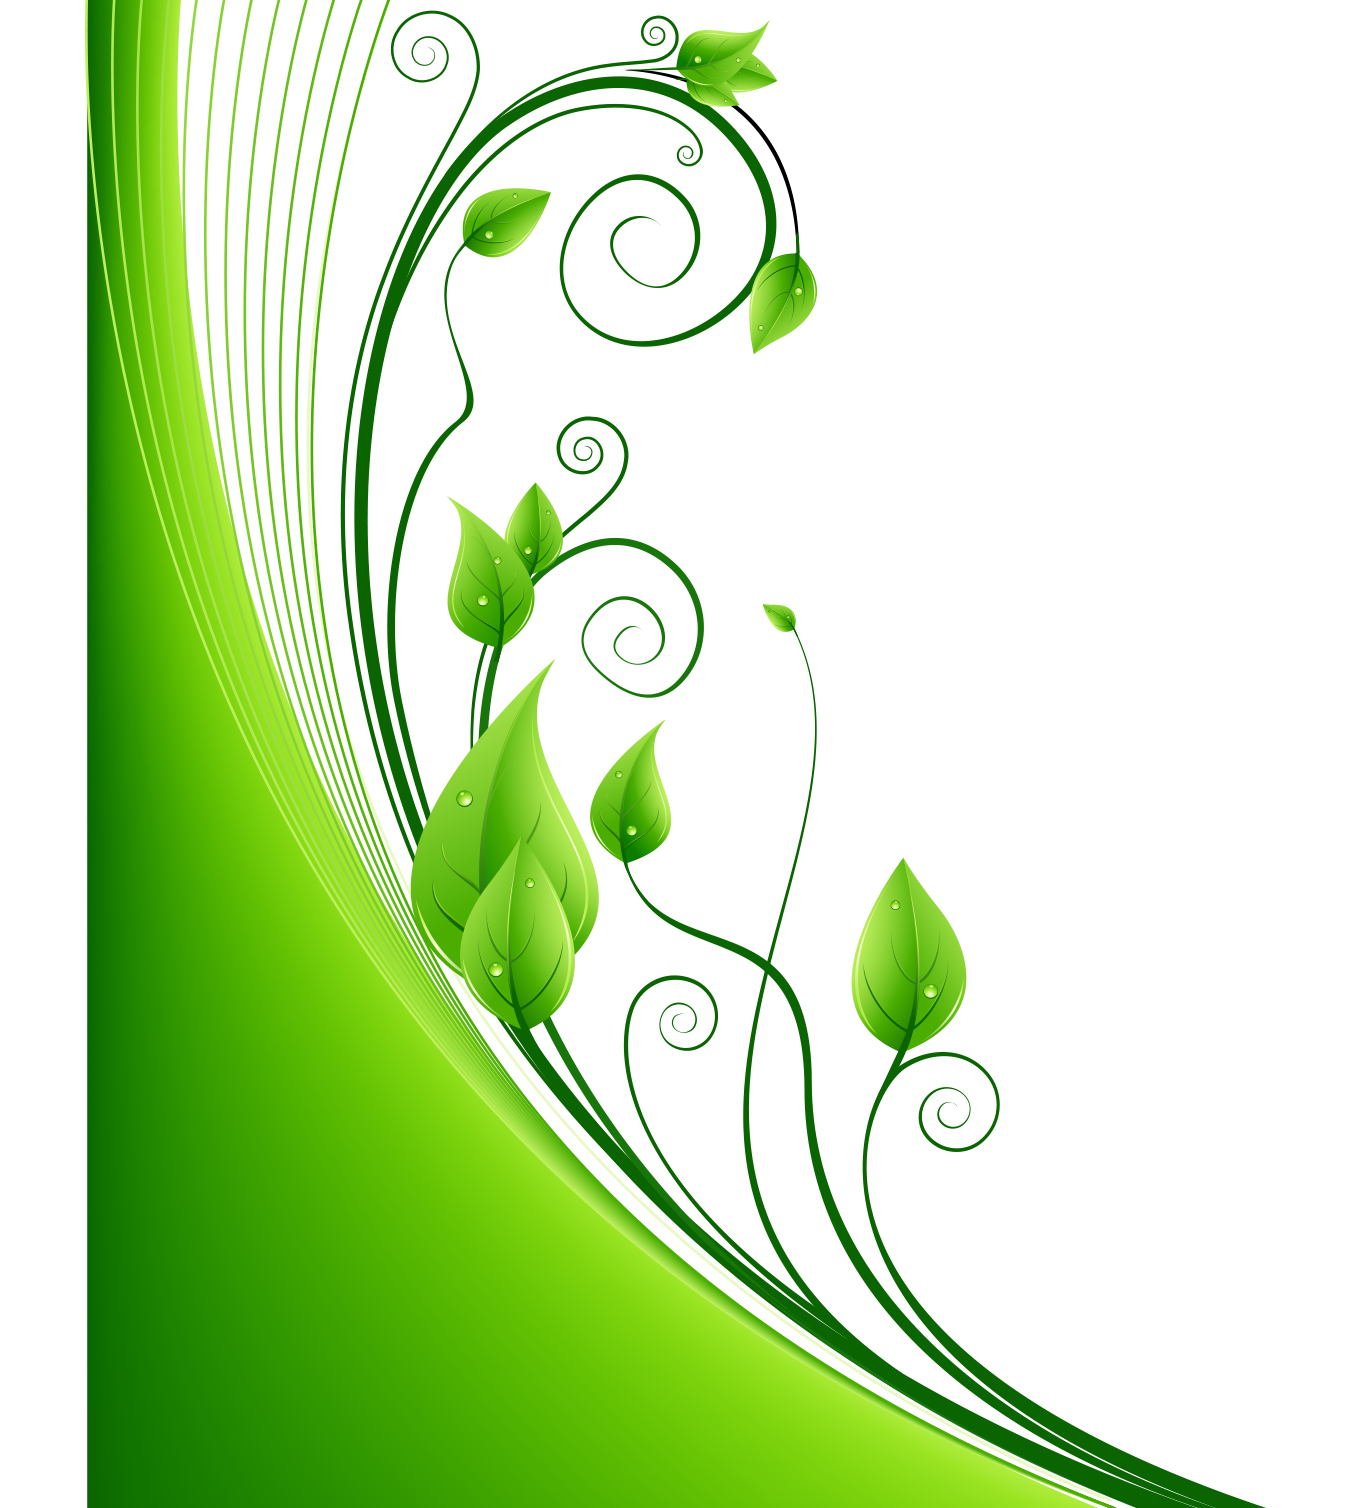 Green leaf euclidean vector. Circle clipart greenery